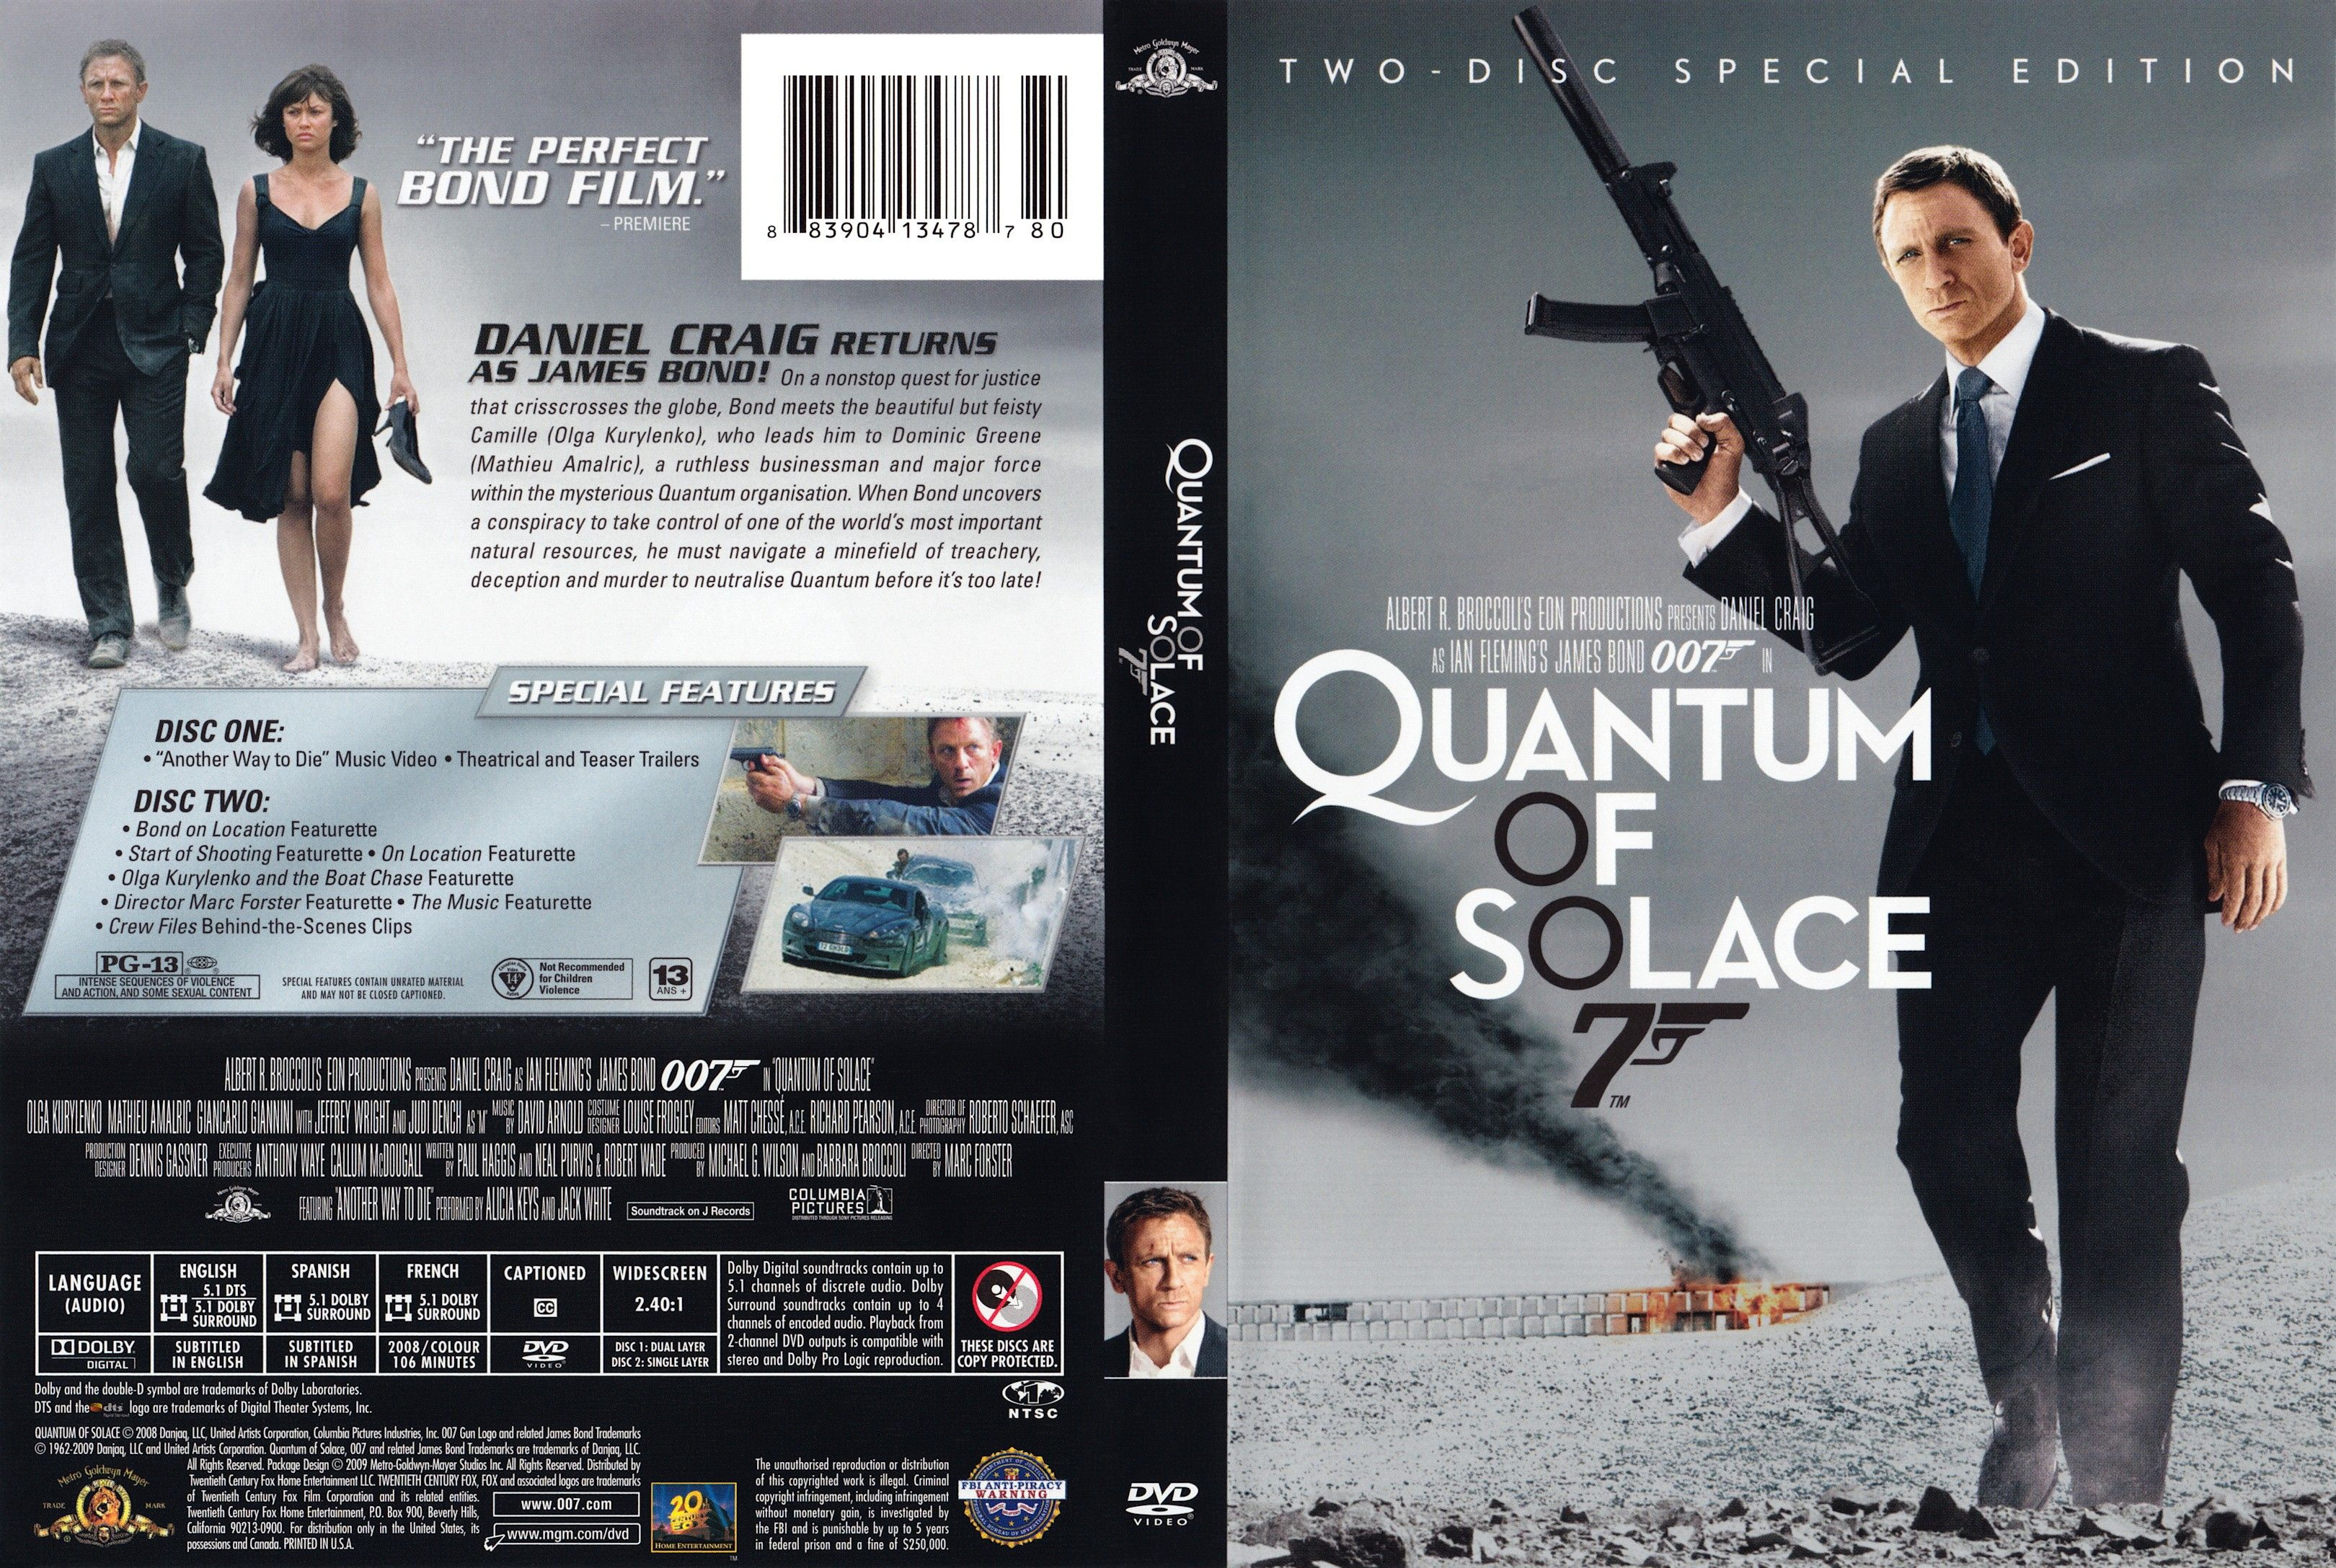 quantum of solace | DVD covers and movie posters ...